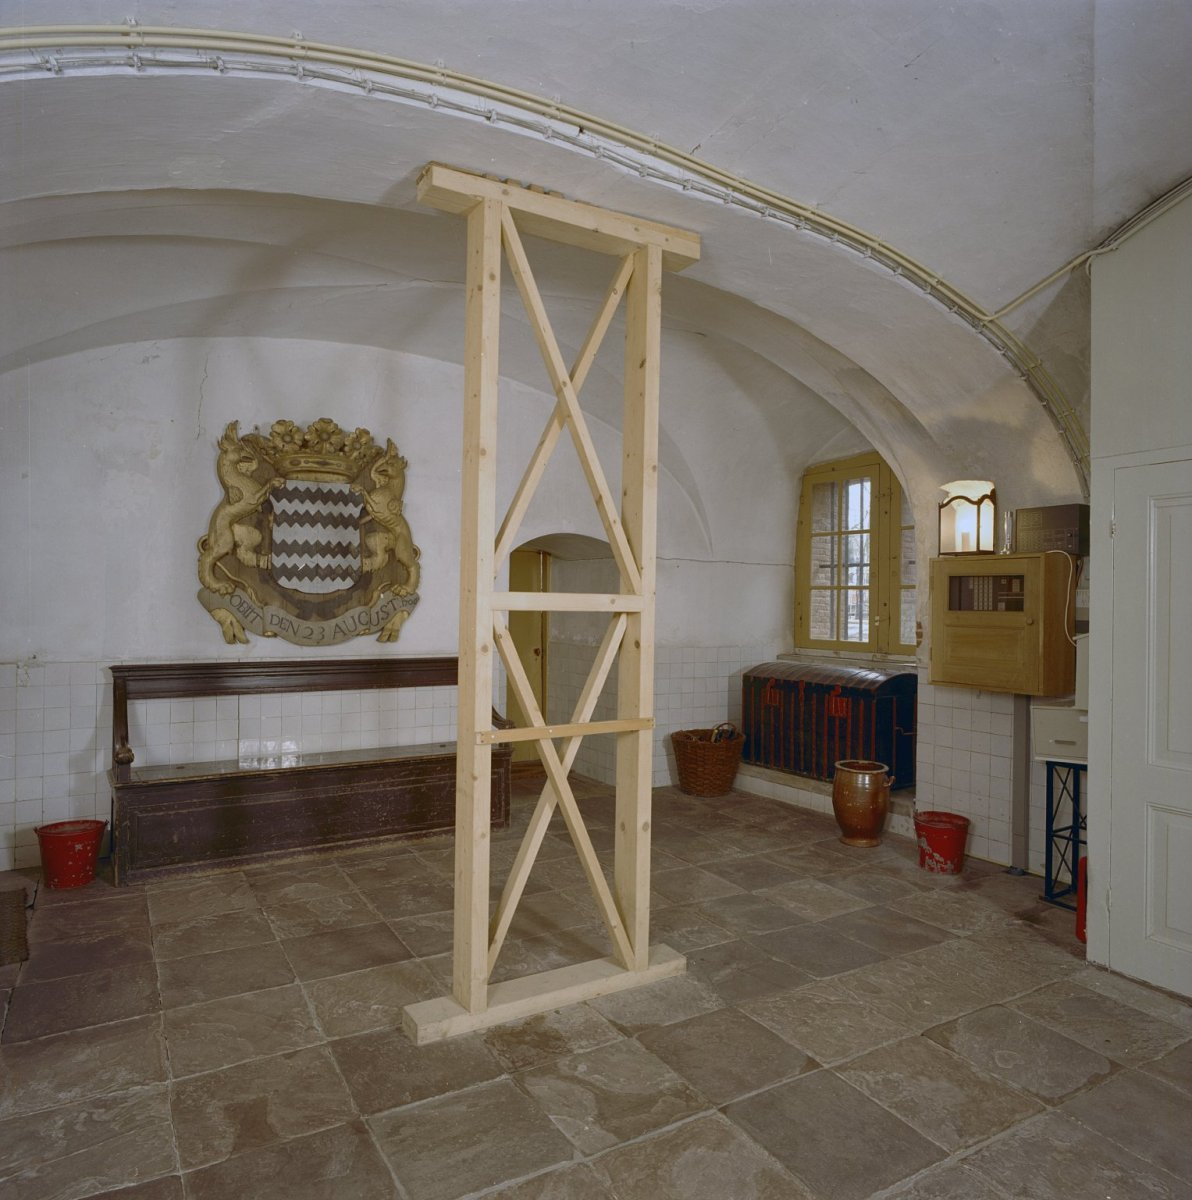 https://upload.wikimedia.org/wikipedia/commons/3/3a/Interieur%2C_overzicht_entree_souterrain_-_Amerongen_-_20001473_-_RCE.jpg